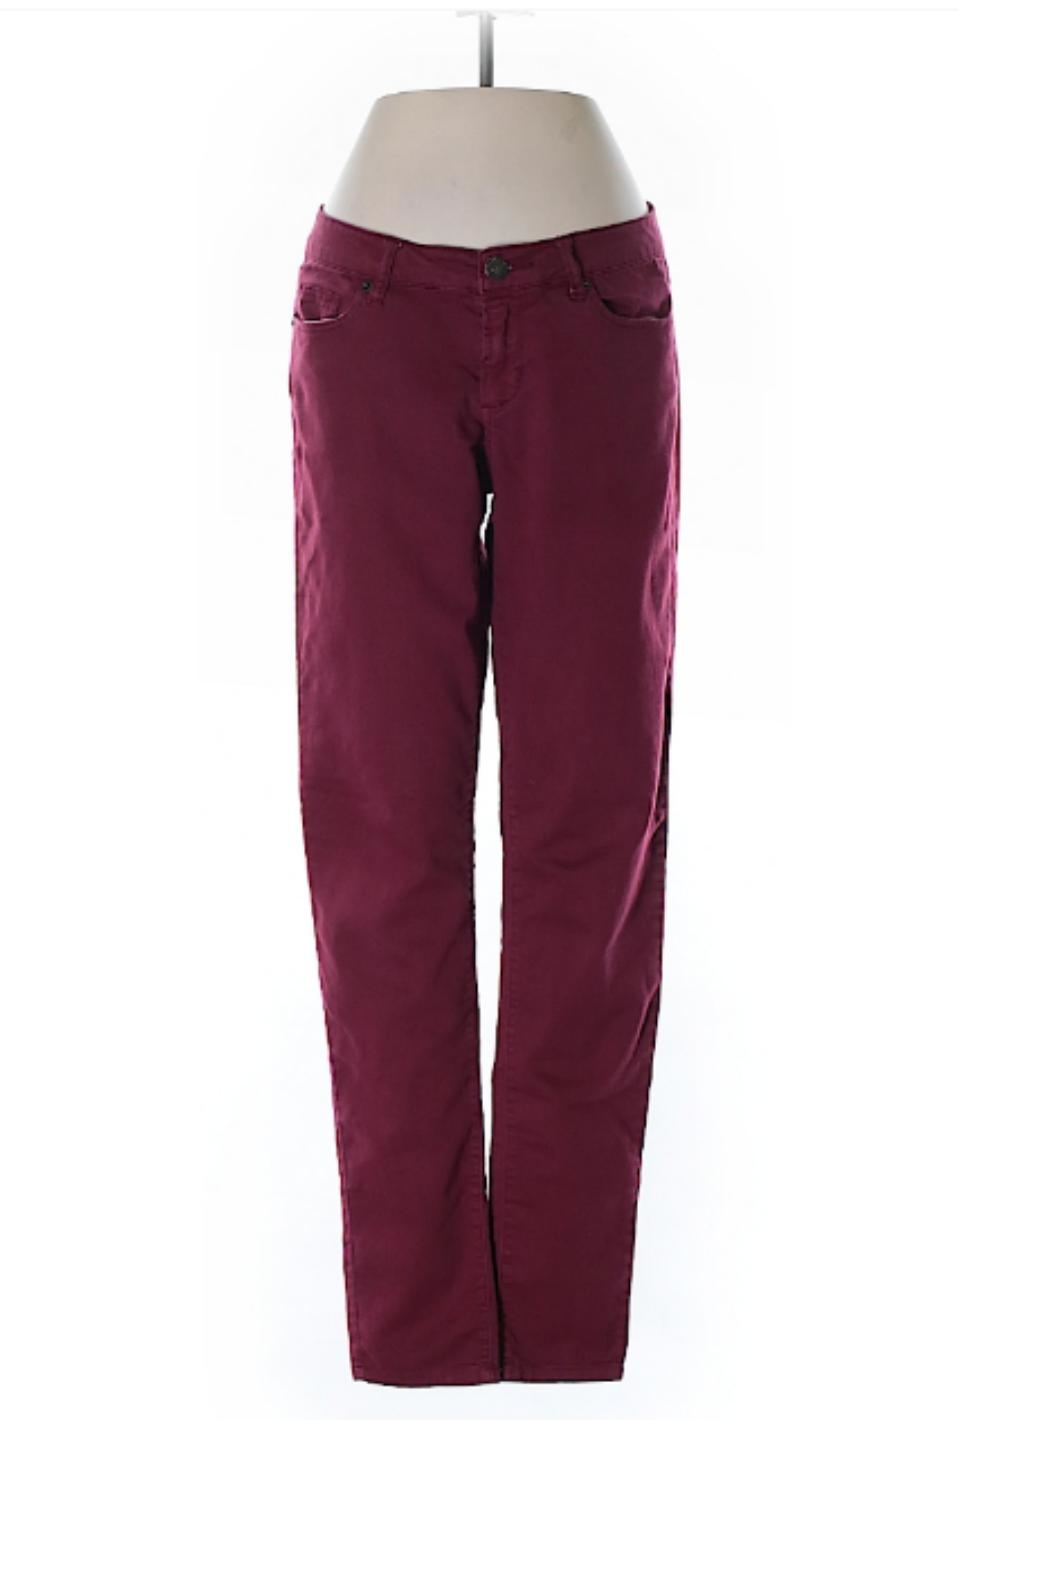 Scarlet Boulevard Casual-Pants - Front Cropped Image